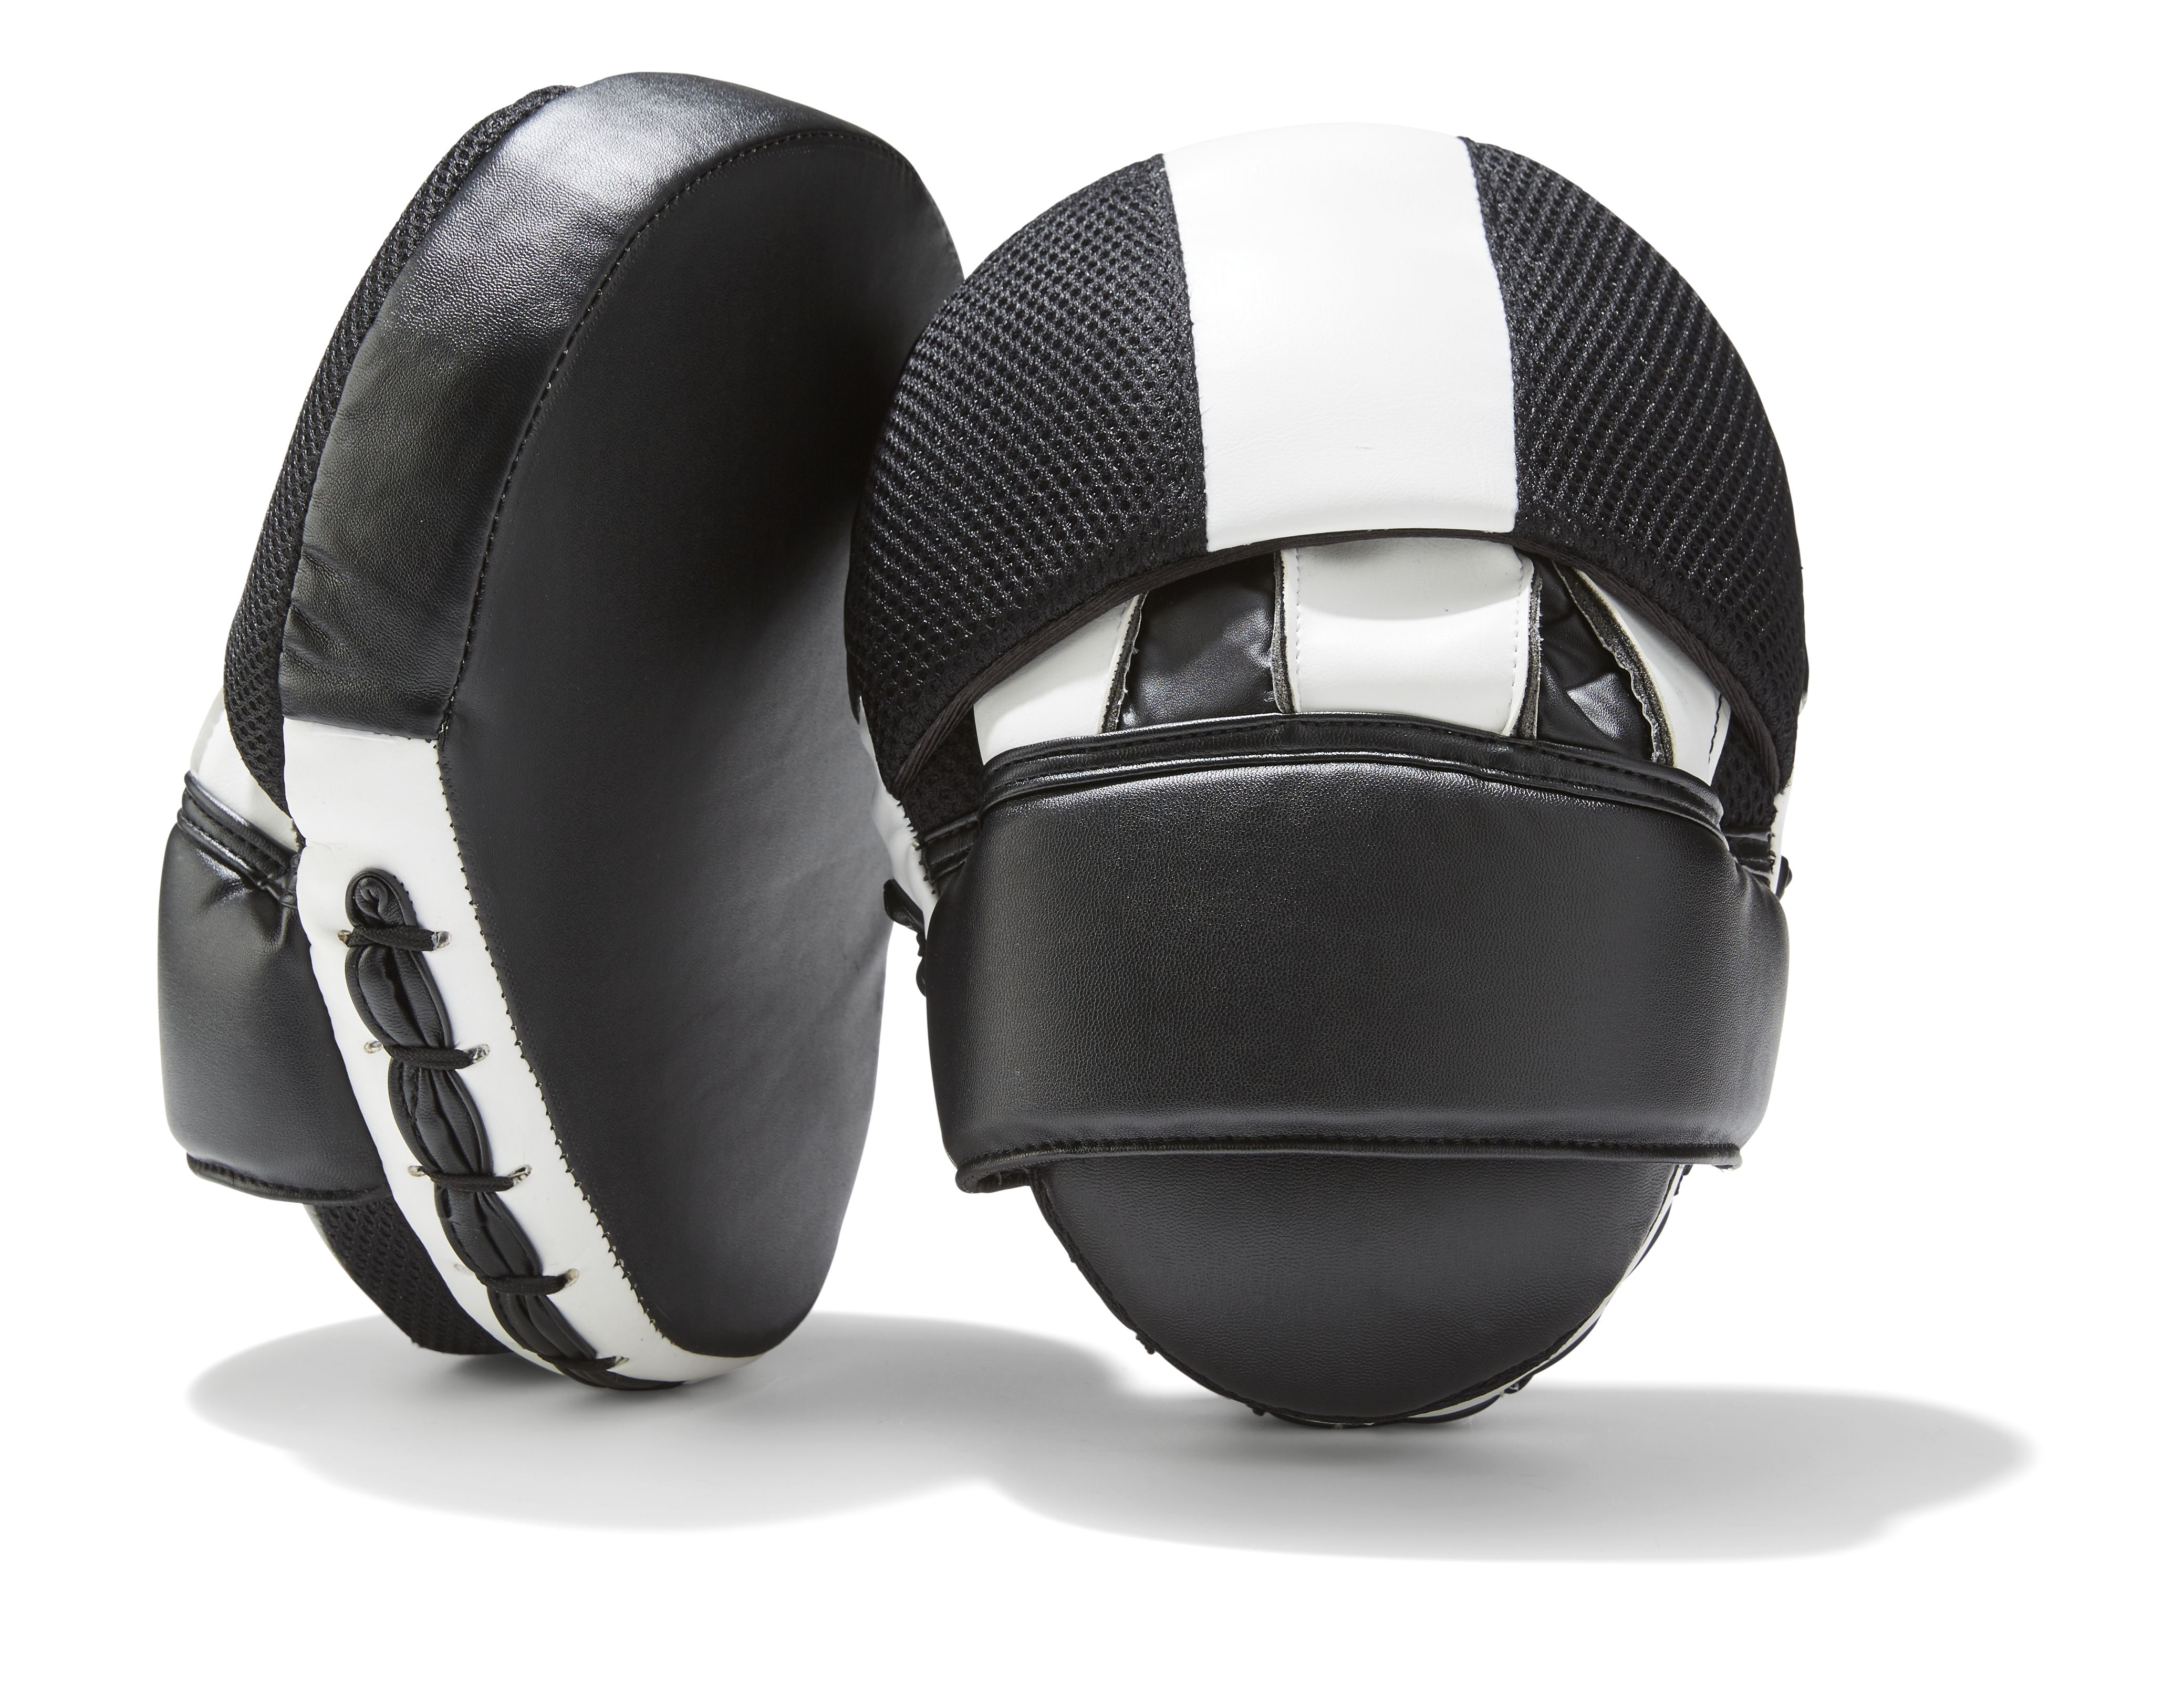 Kmart Hook and Jab pads, RRP$25.00